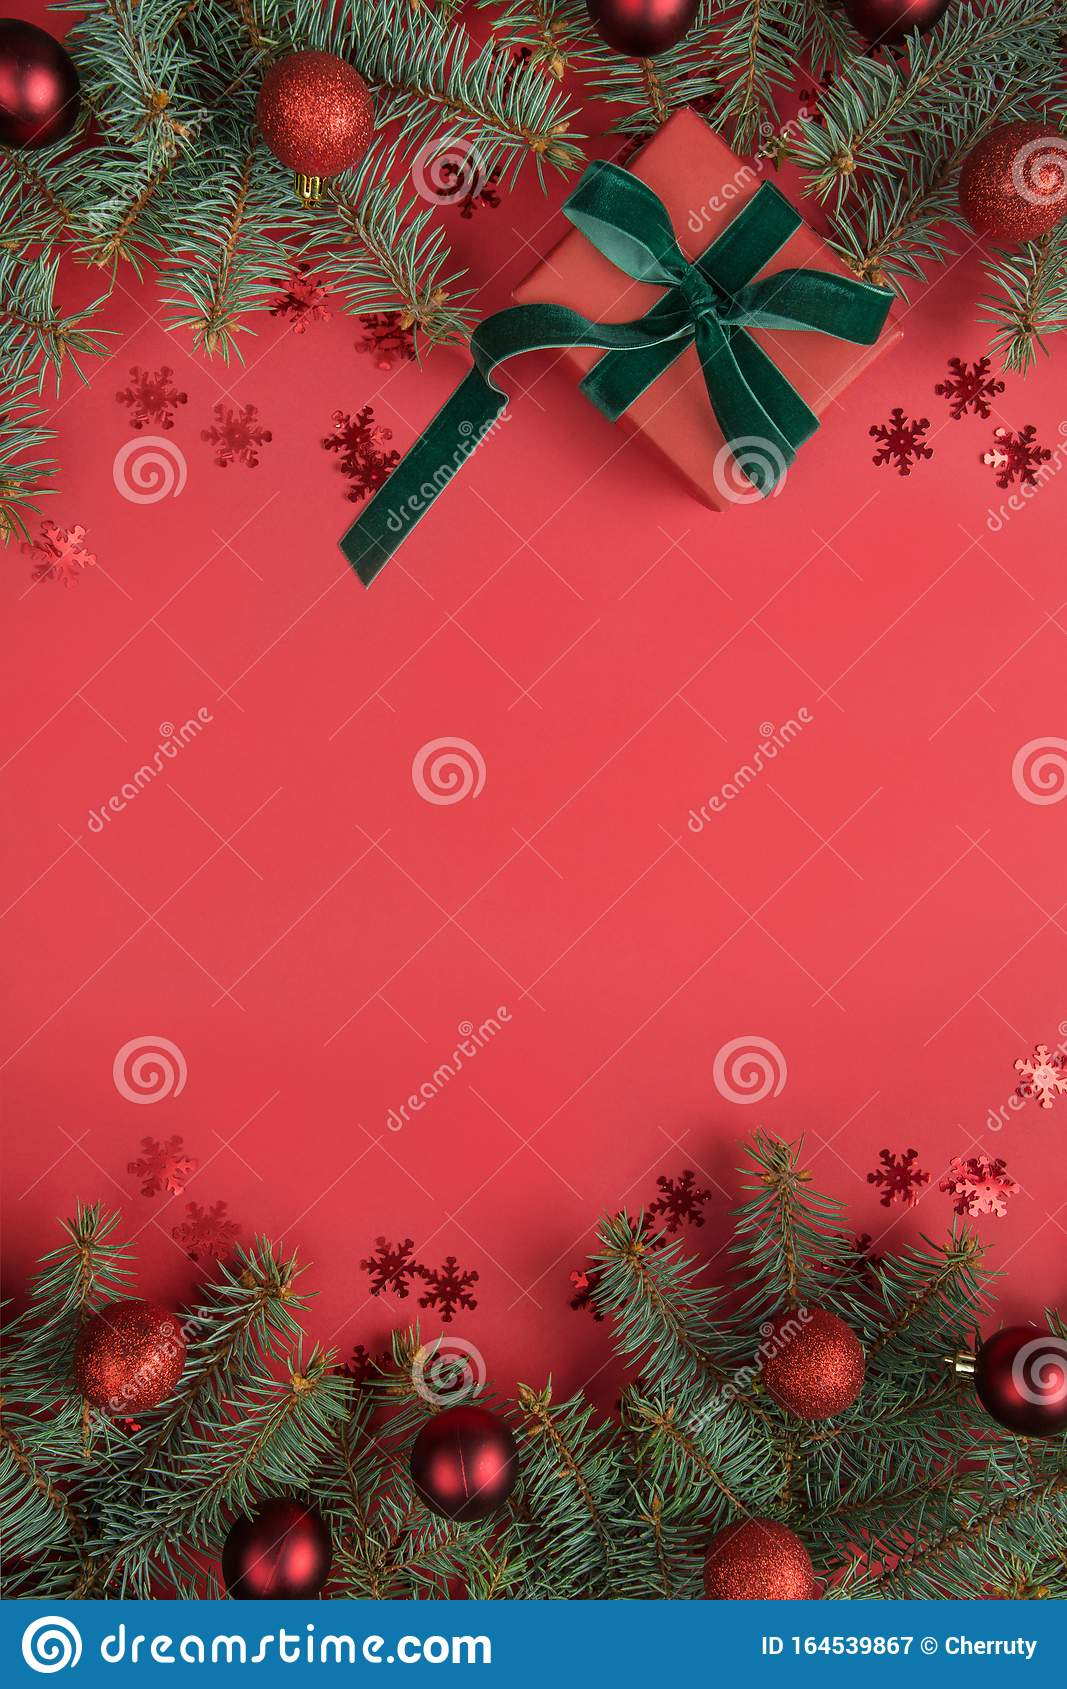 christmas border with fir tree and gift on red background